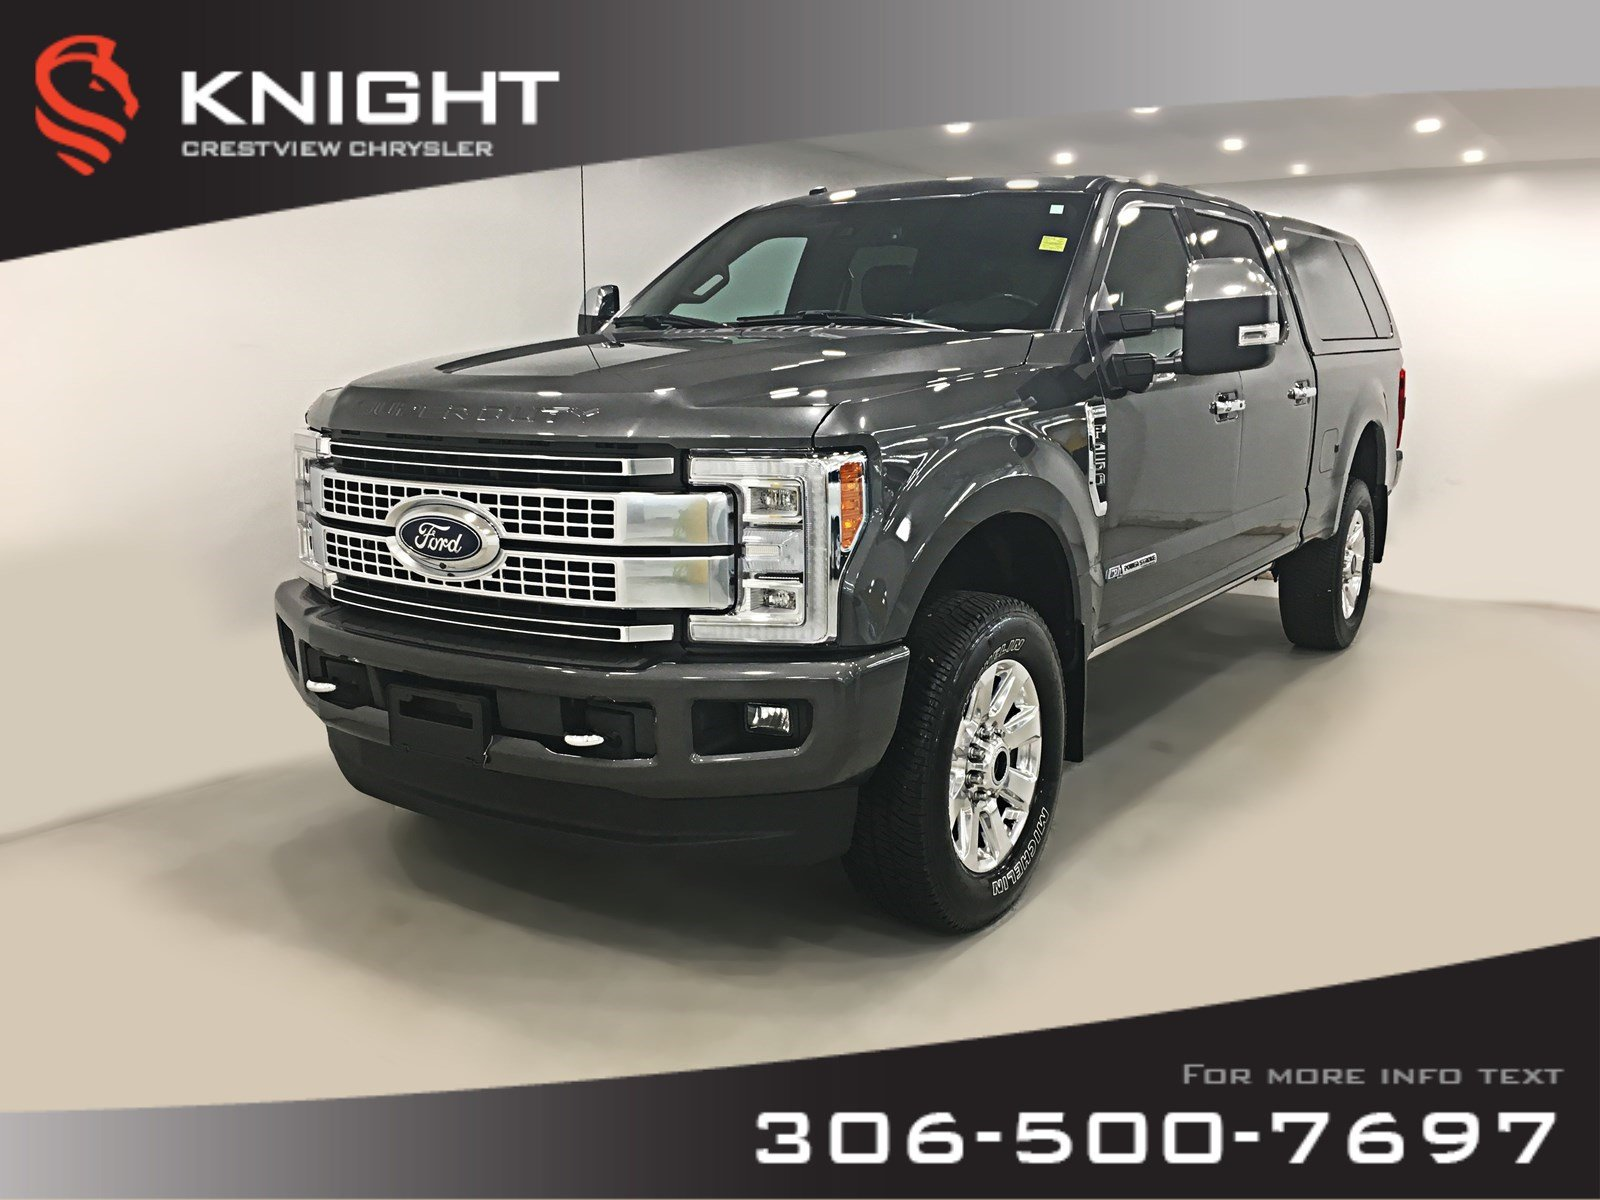 Pre-Owned 2017 Ford Super Duty F-250 SRW Platinum Crew Cab | Leather | Sunroof | Navigation